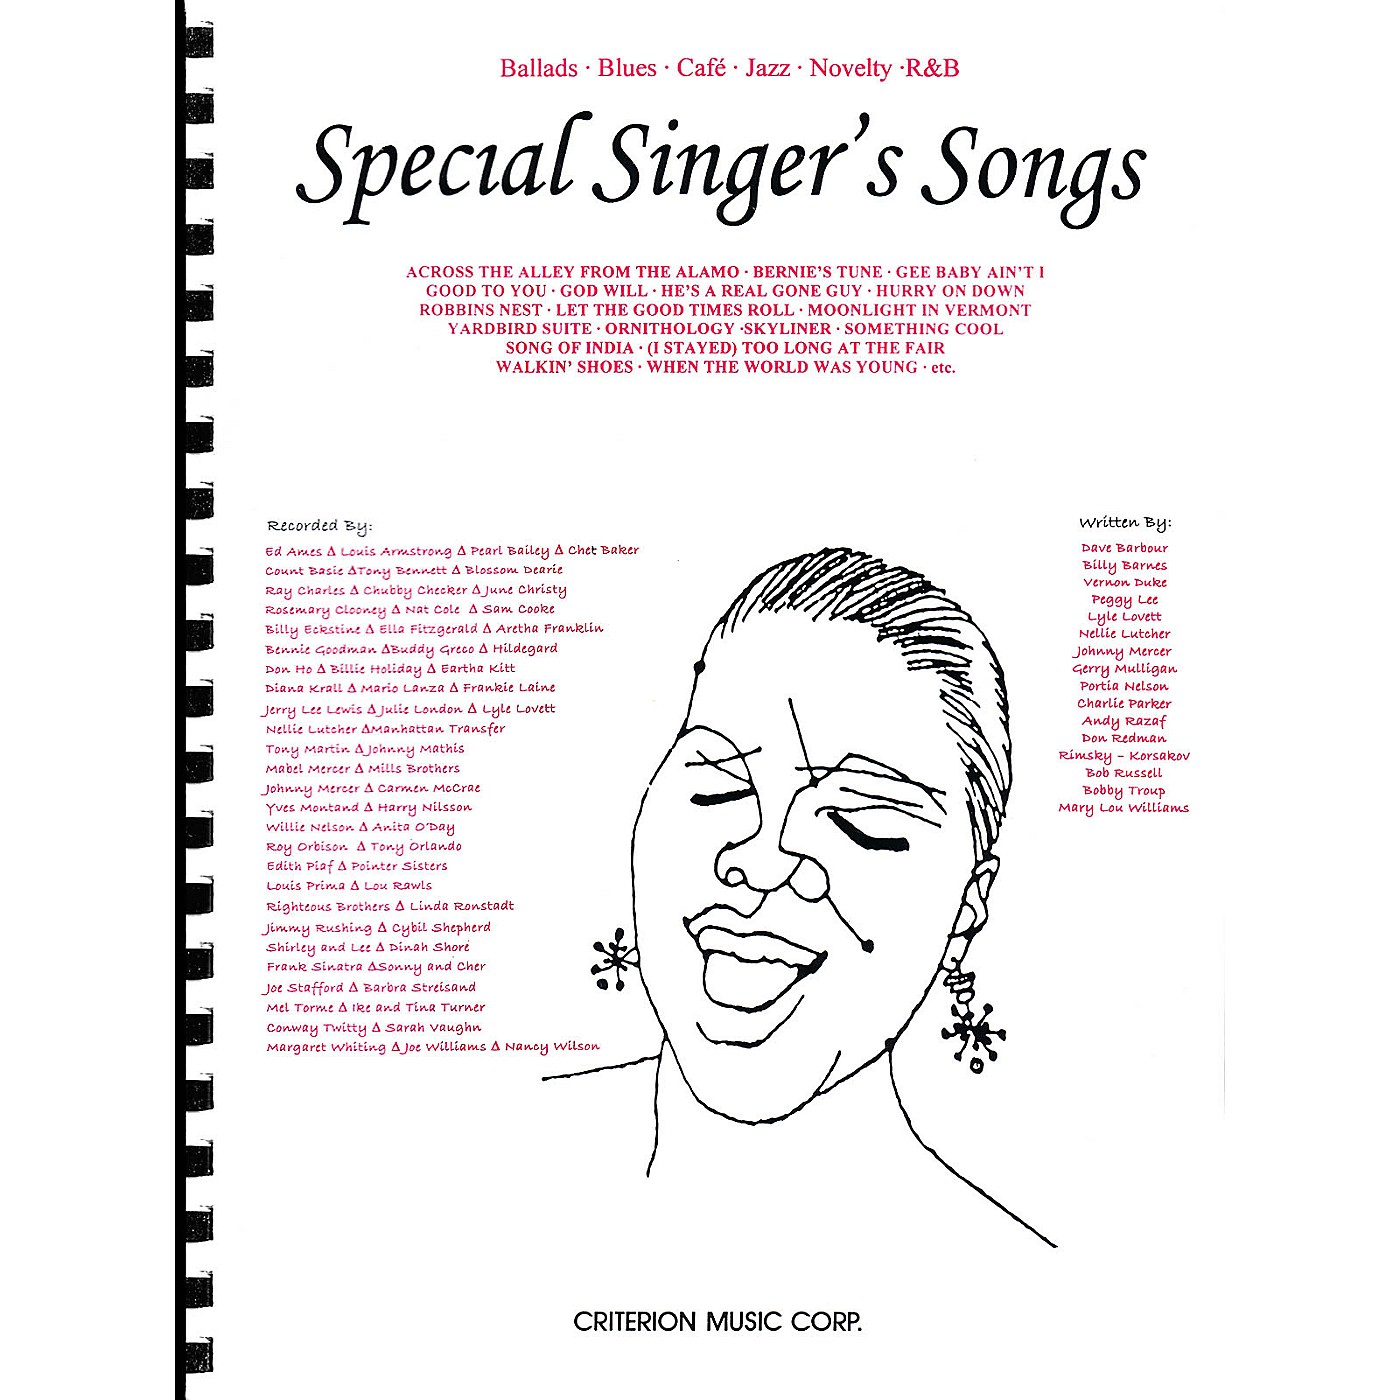 Criterion Special Singer's Songs (Ballads · Blues · Café · Jazz · Novelty · R&B) Criterion Series thumbnail